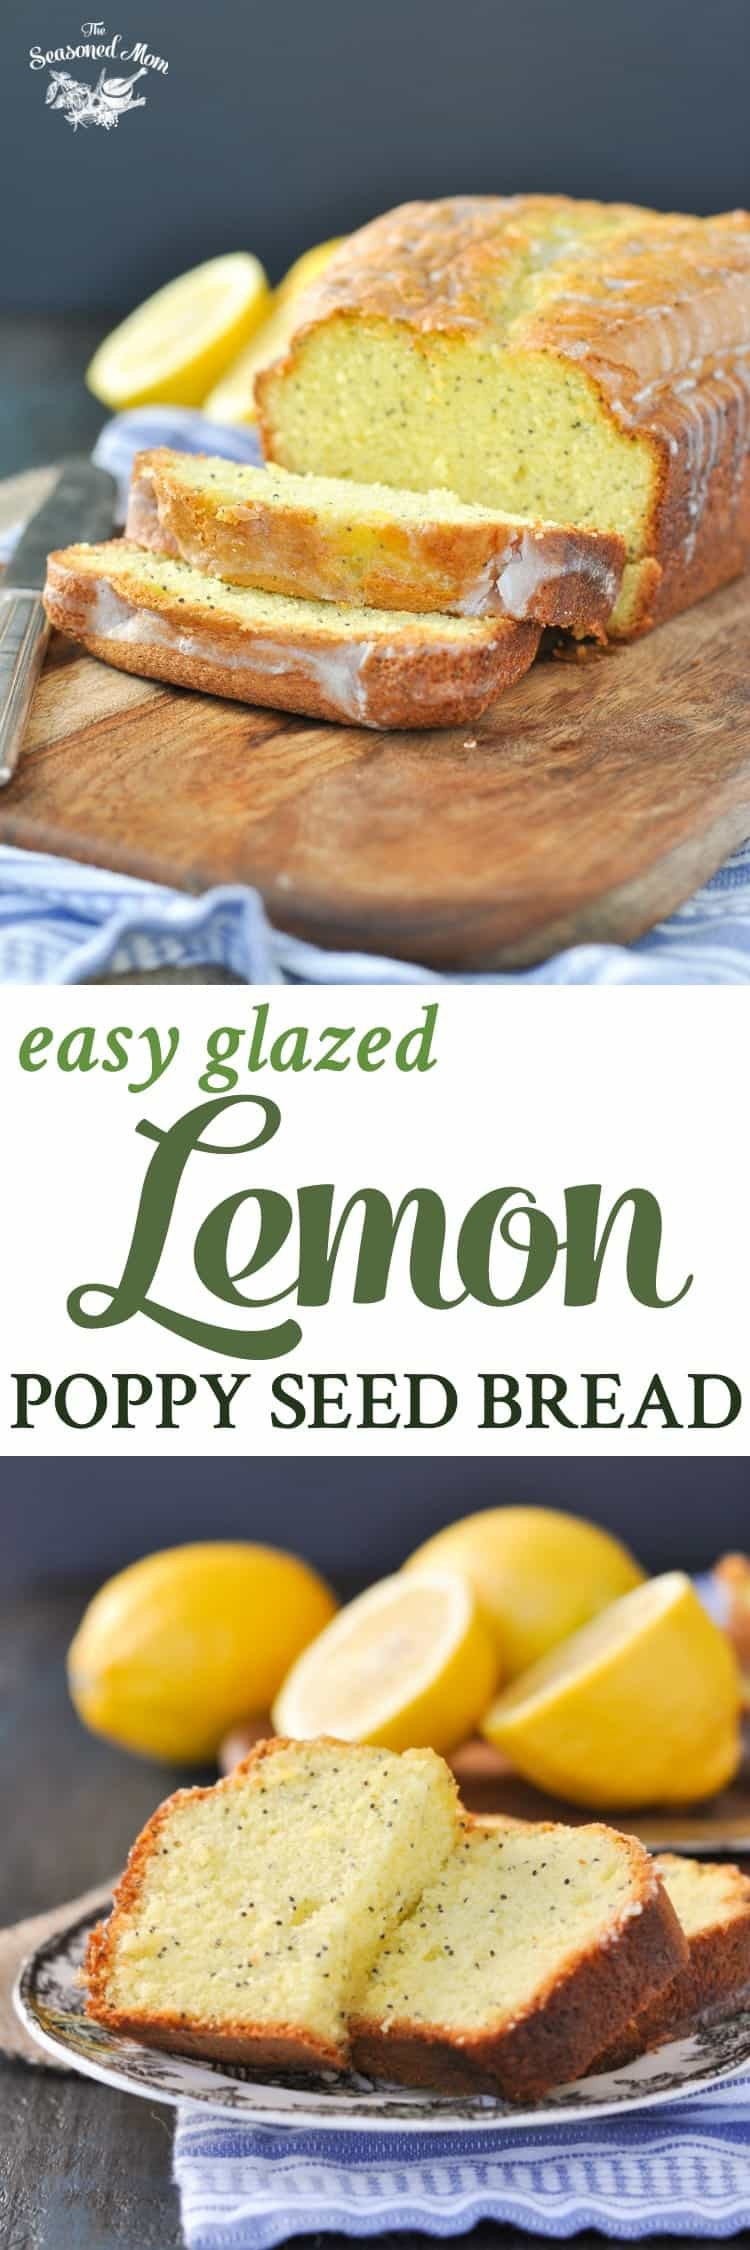 Poppy seed bread cake mix recipe